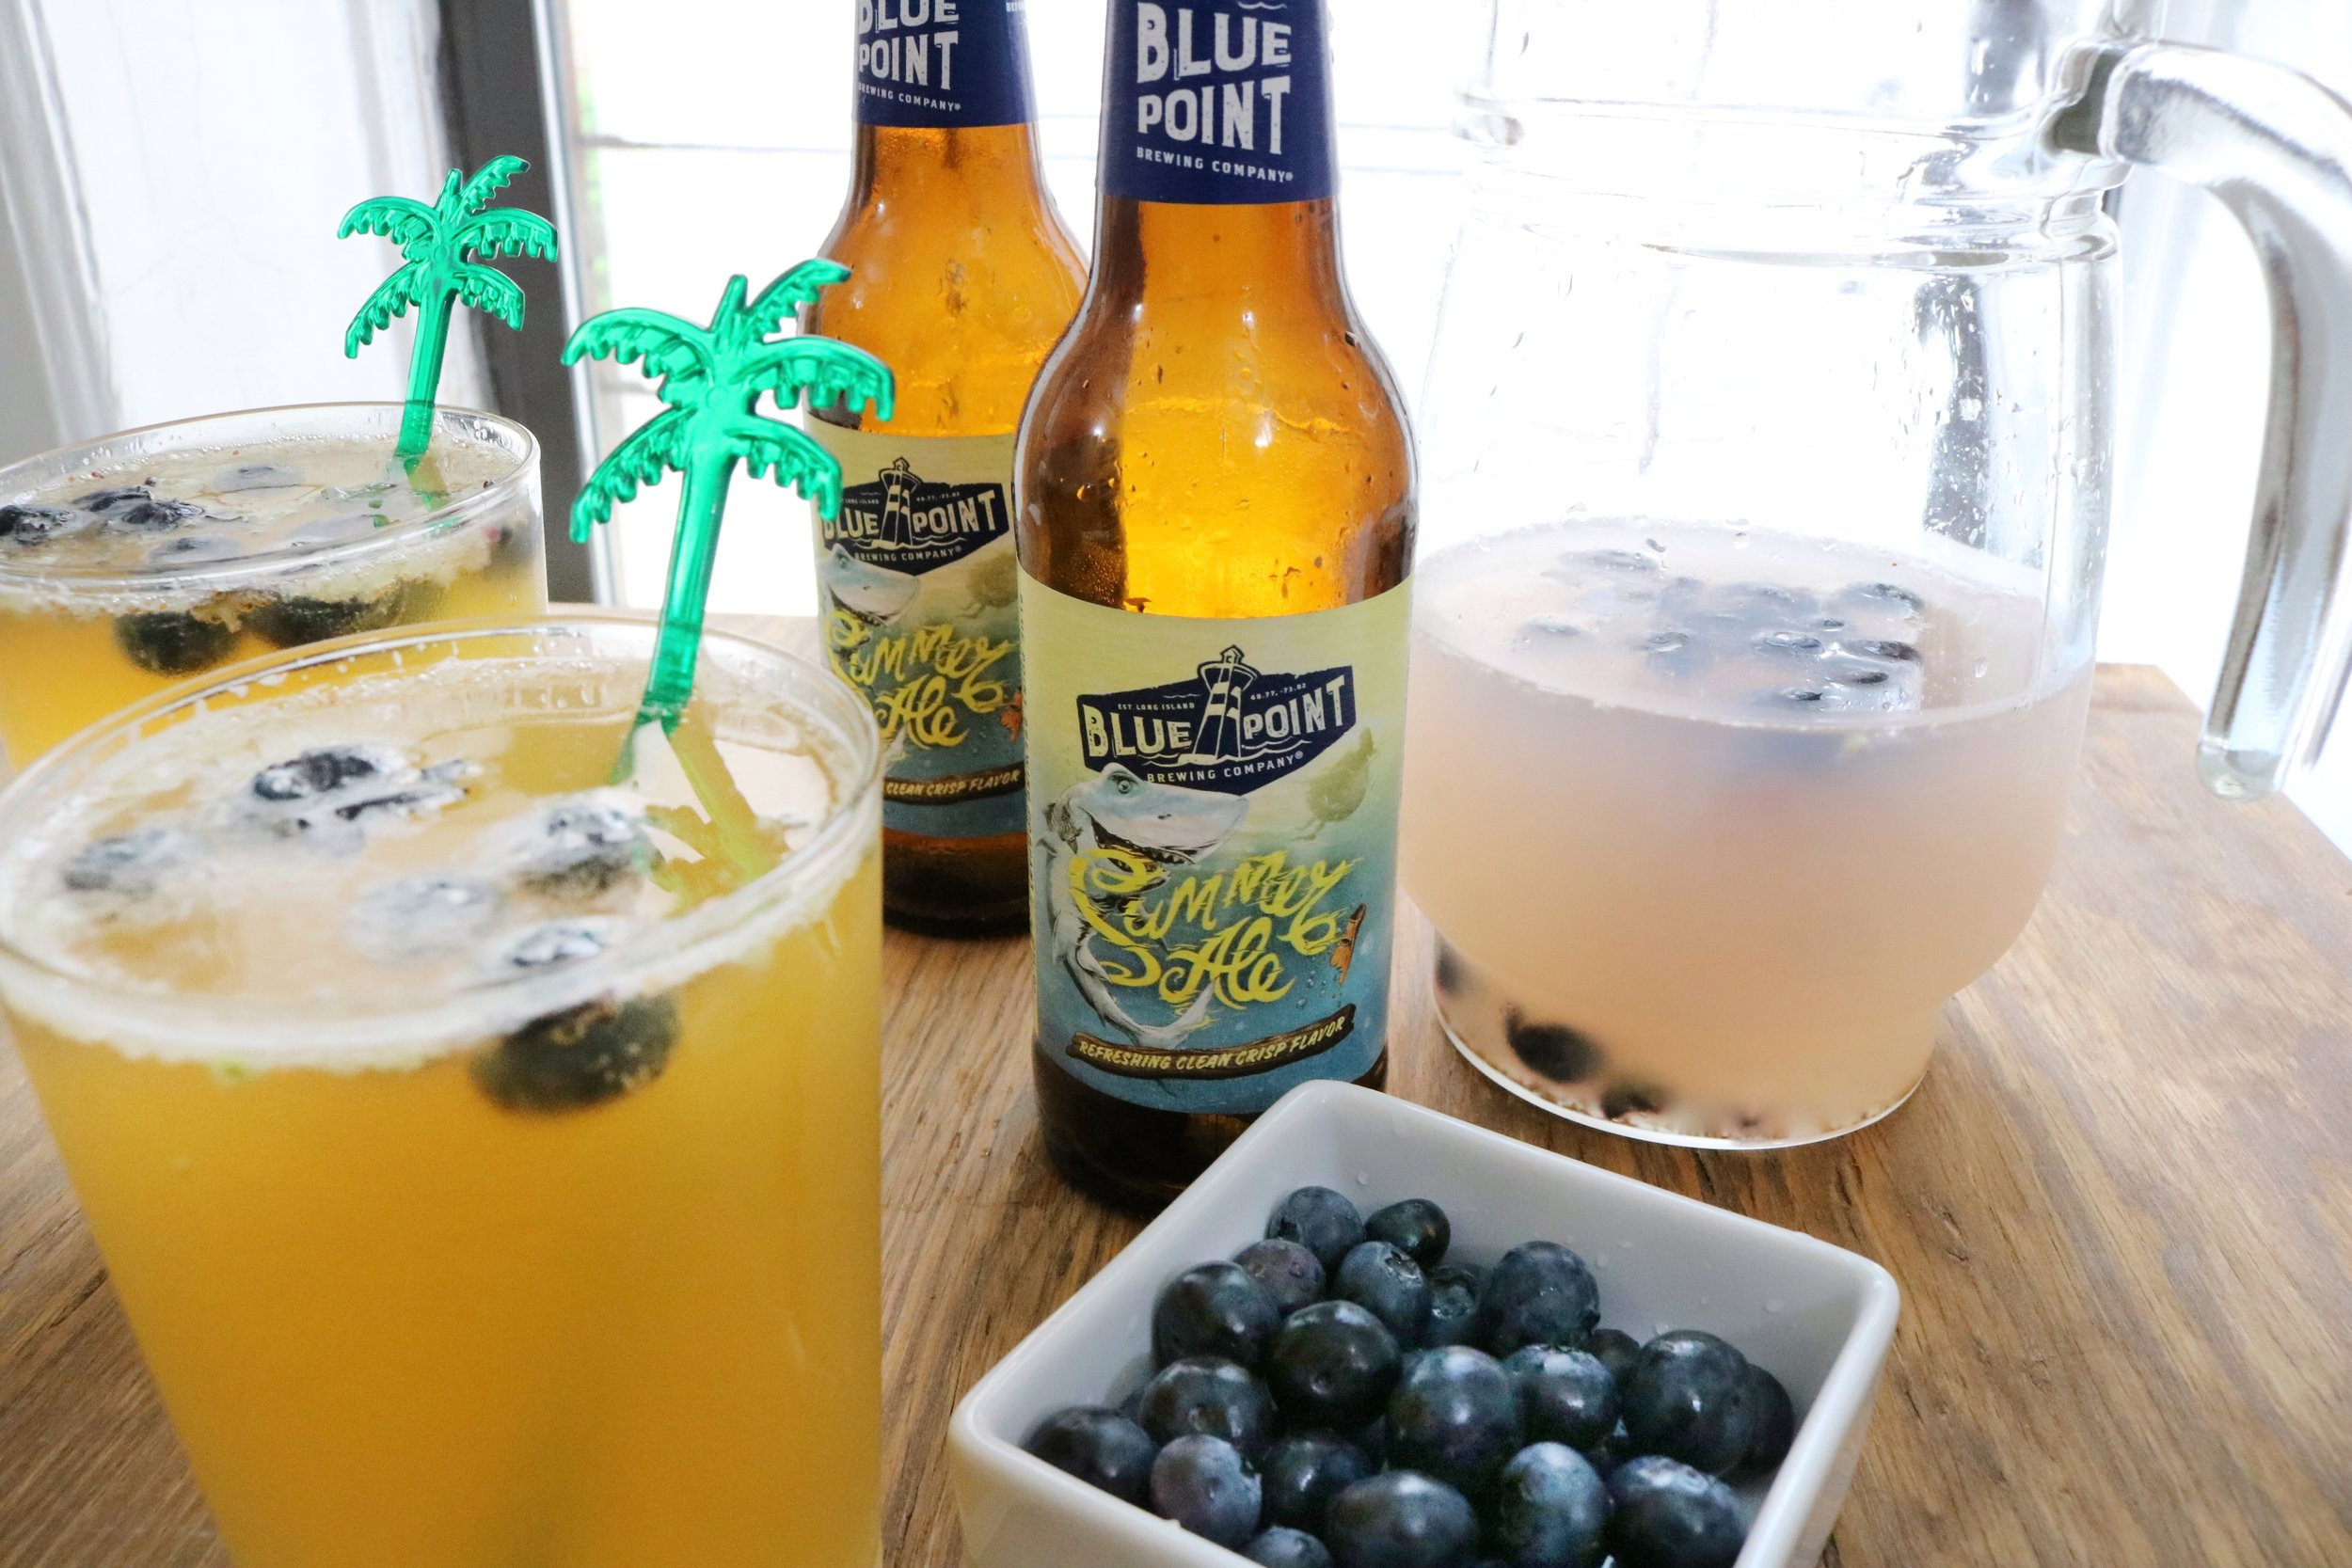 Blueberry Summer Shandy Beer Cocktail #beer #summerbeer #summerbbqs #summerale #blueberries #cocktailrecipes